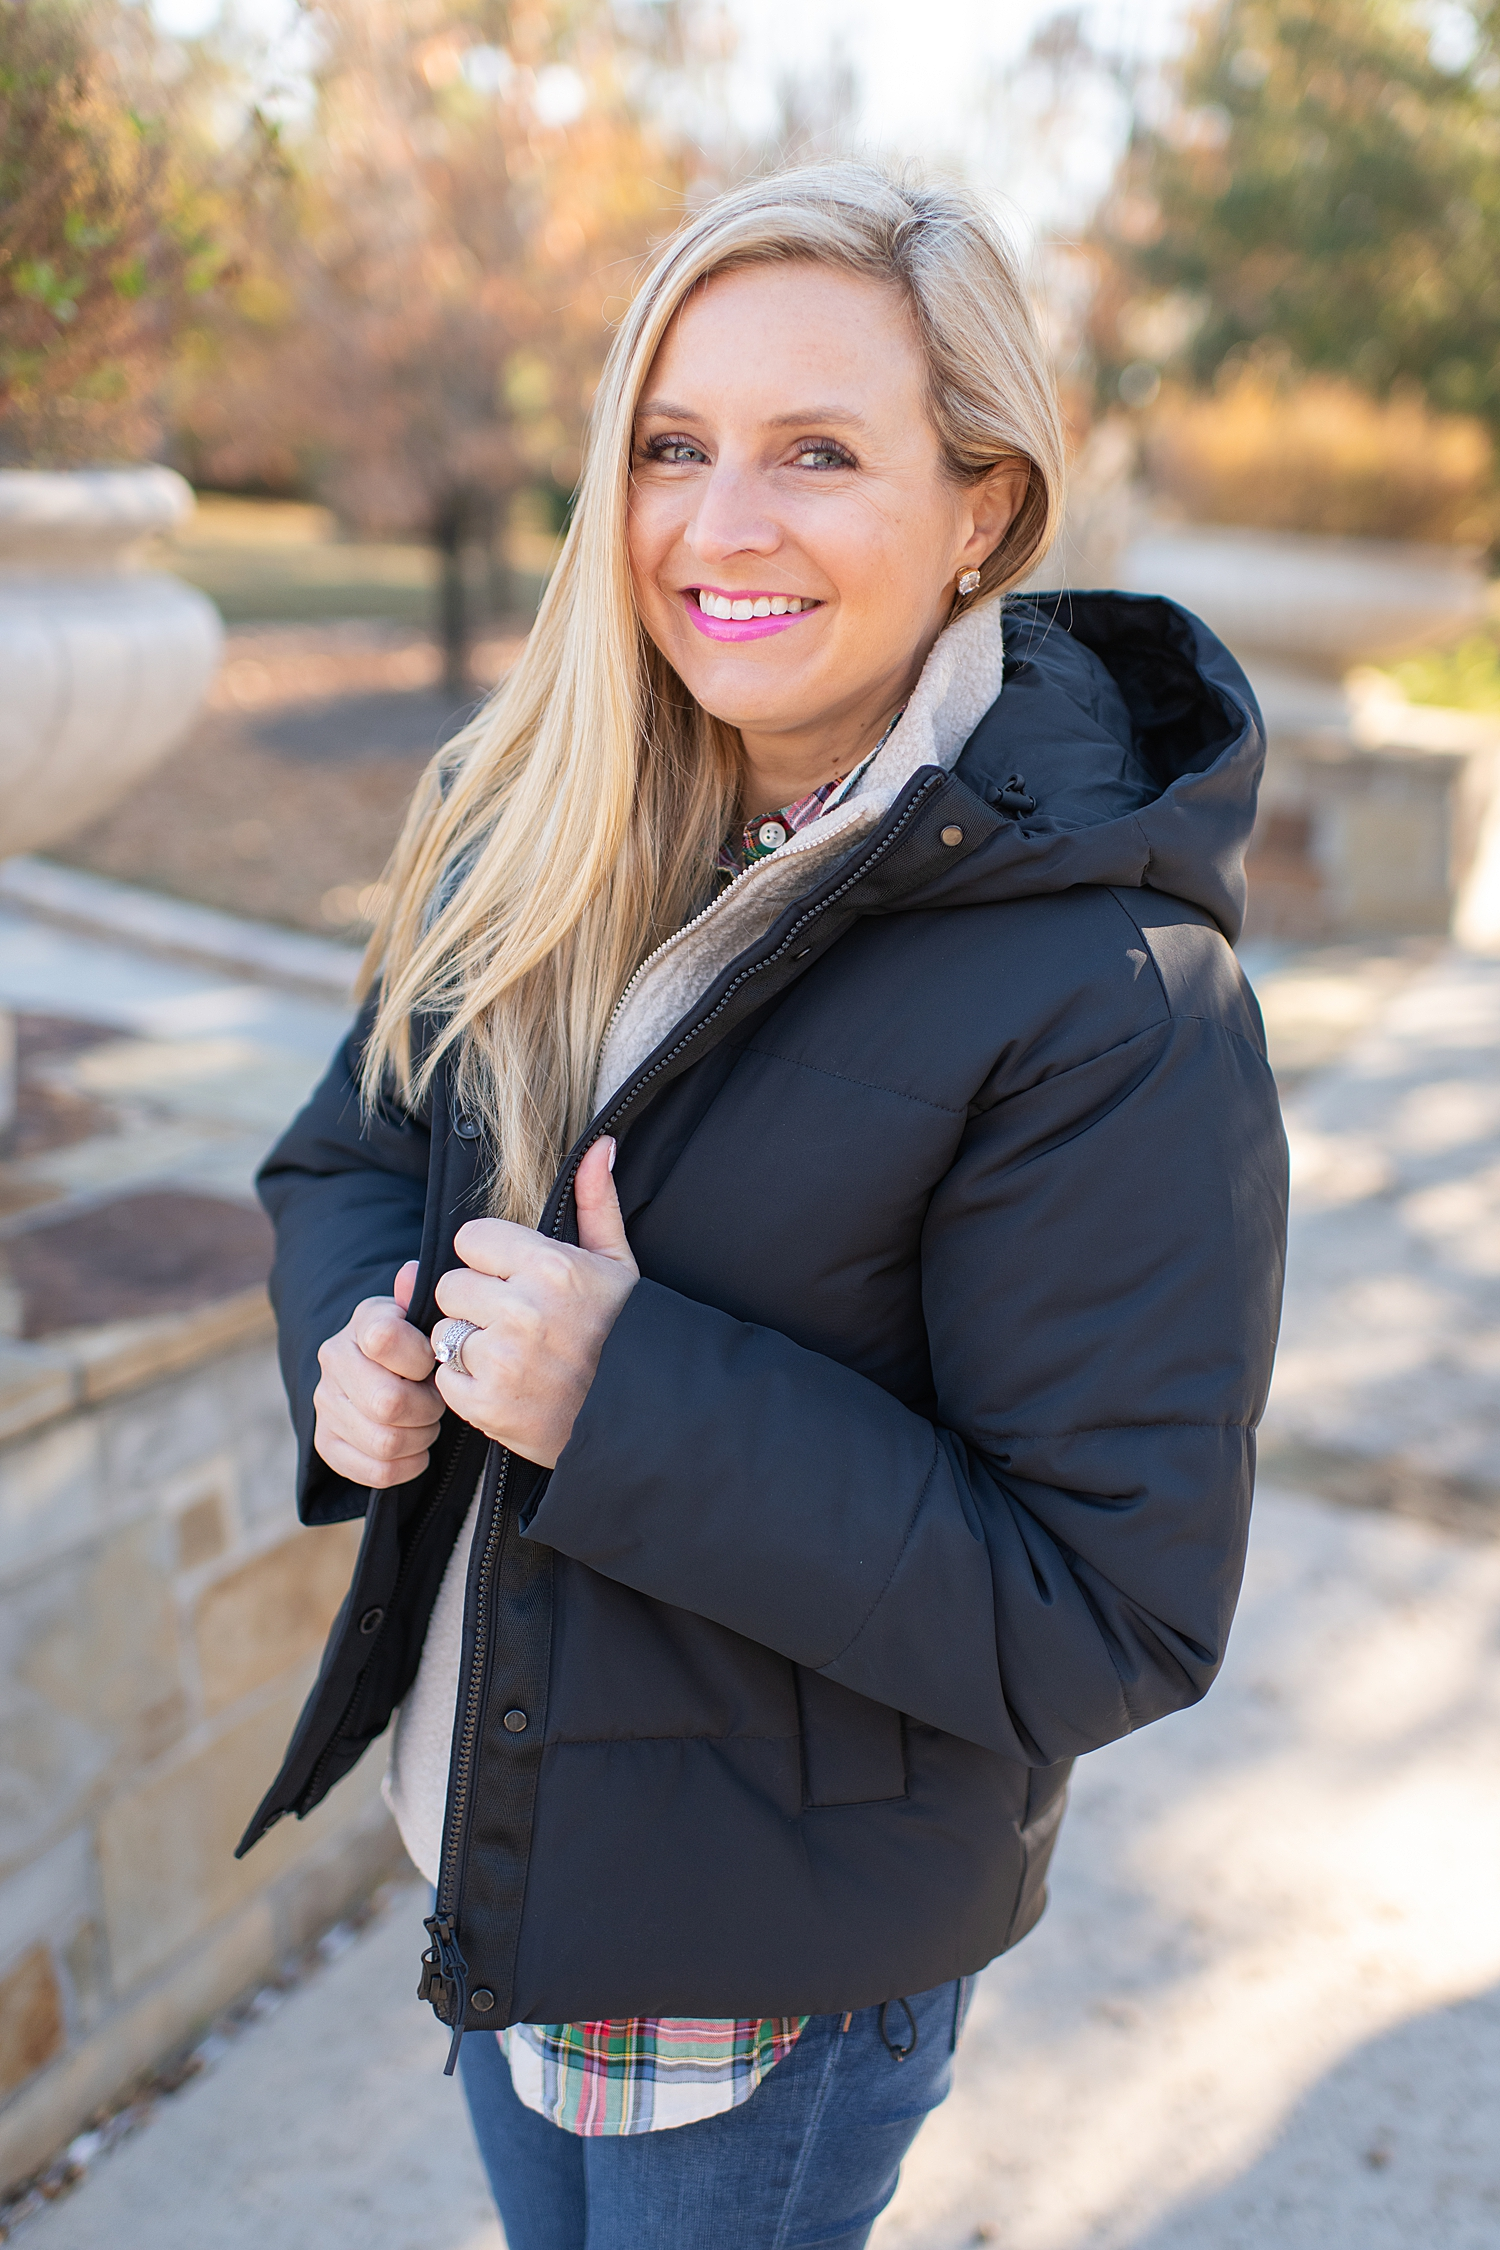 The Best Cozy Gift Ideas featured by top Houston fashion blogger, Fancy Ashley: picture of a blonde woman wearing a black Everyone puffer jacket, Everlane zip fleece, J.Crew tartan shirt, J.Crew skinny jeans and Golden Goose sneakers